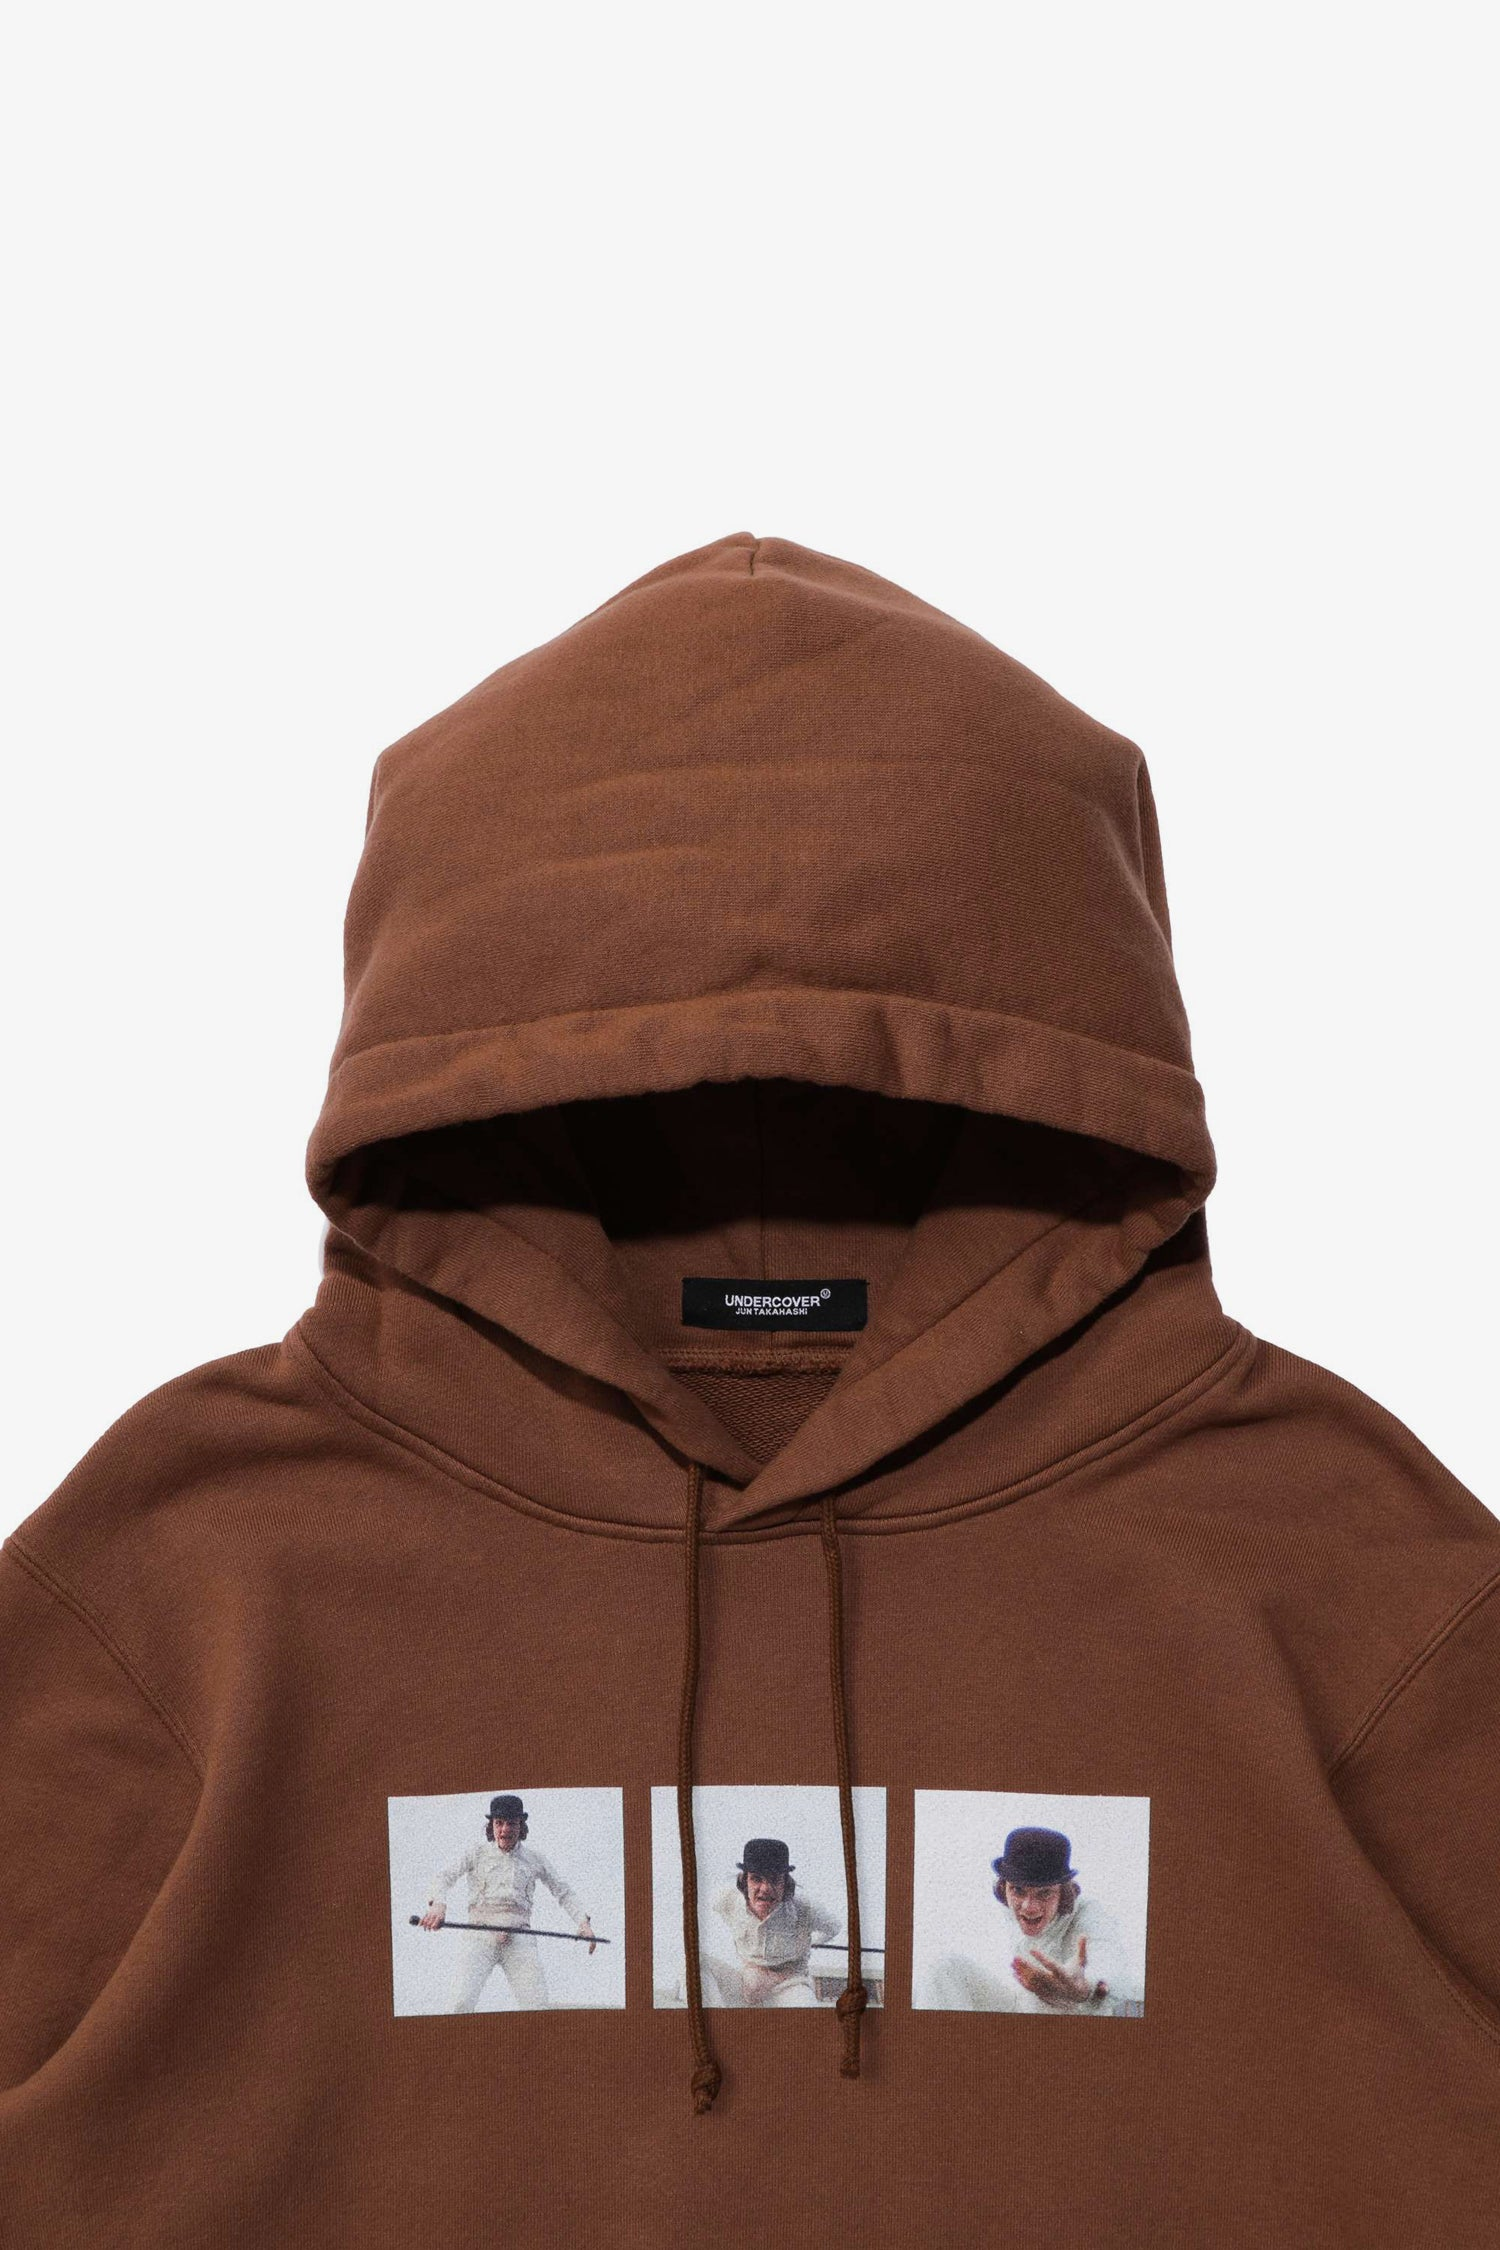 Selectshop FRAME - UNDERCOVER Clockwork Orange Printed Hoodie Sweatshirt Dubai